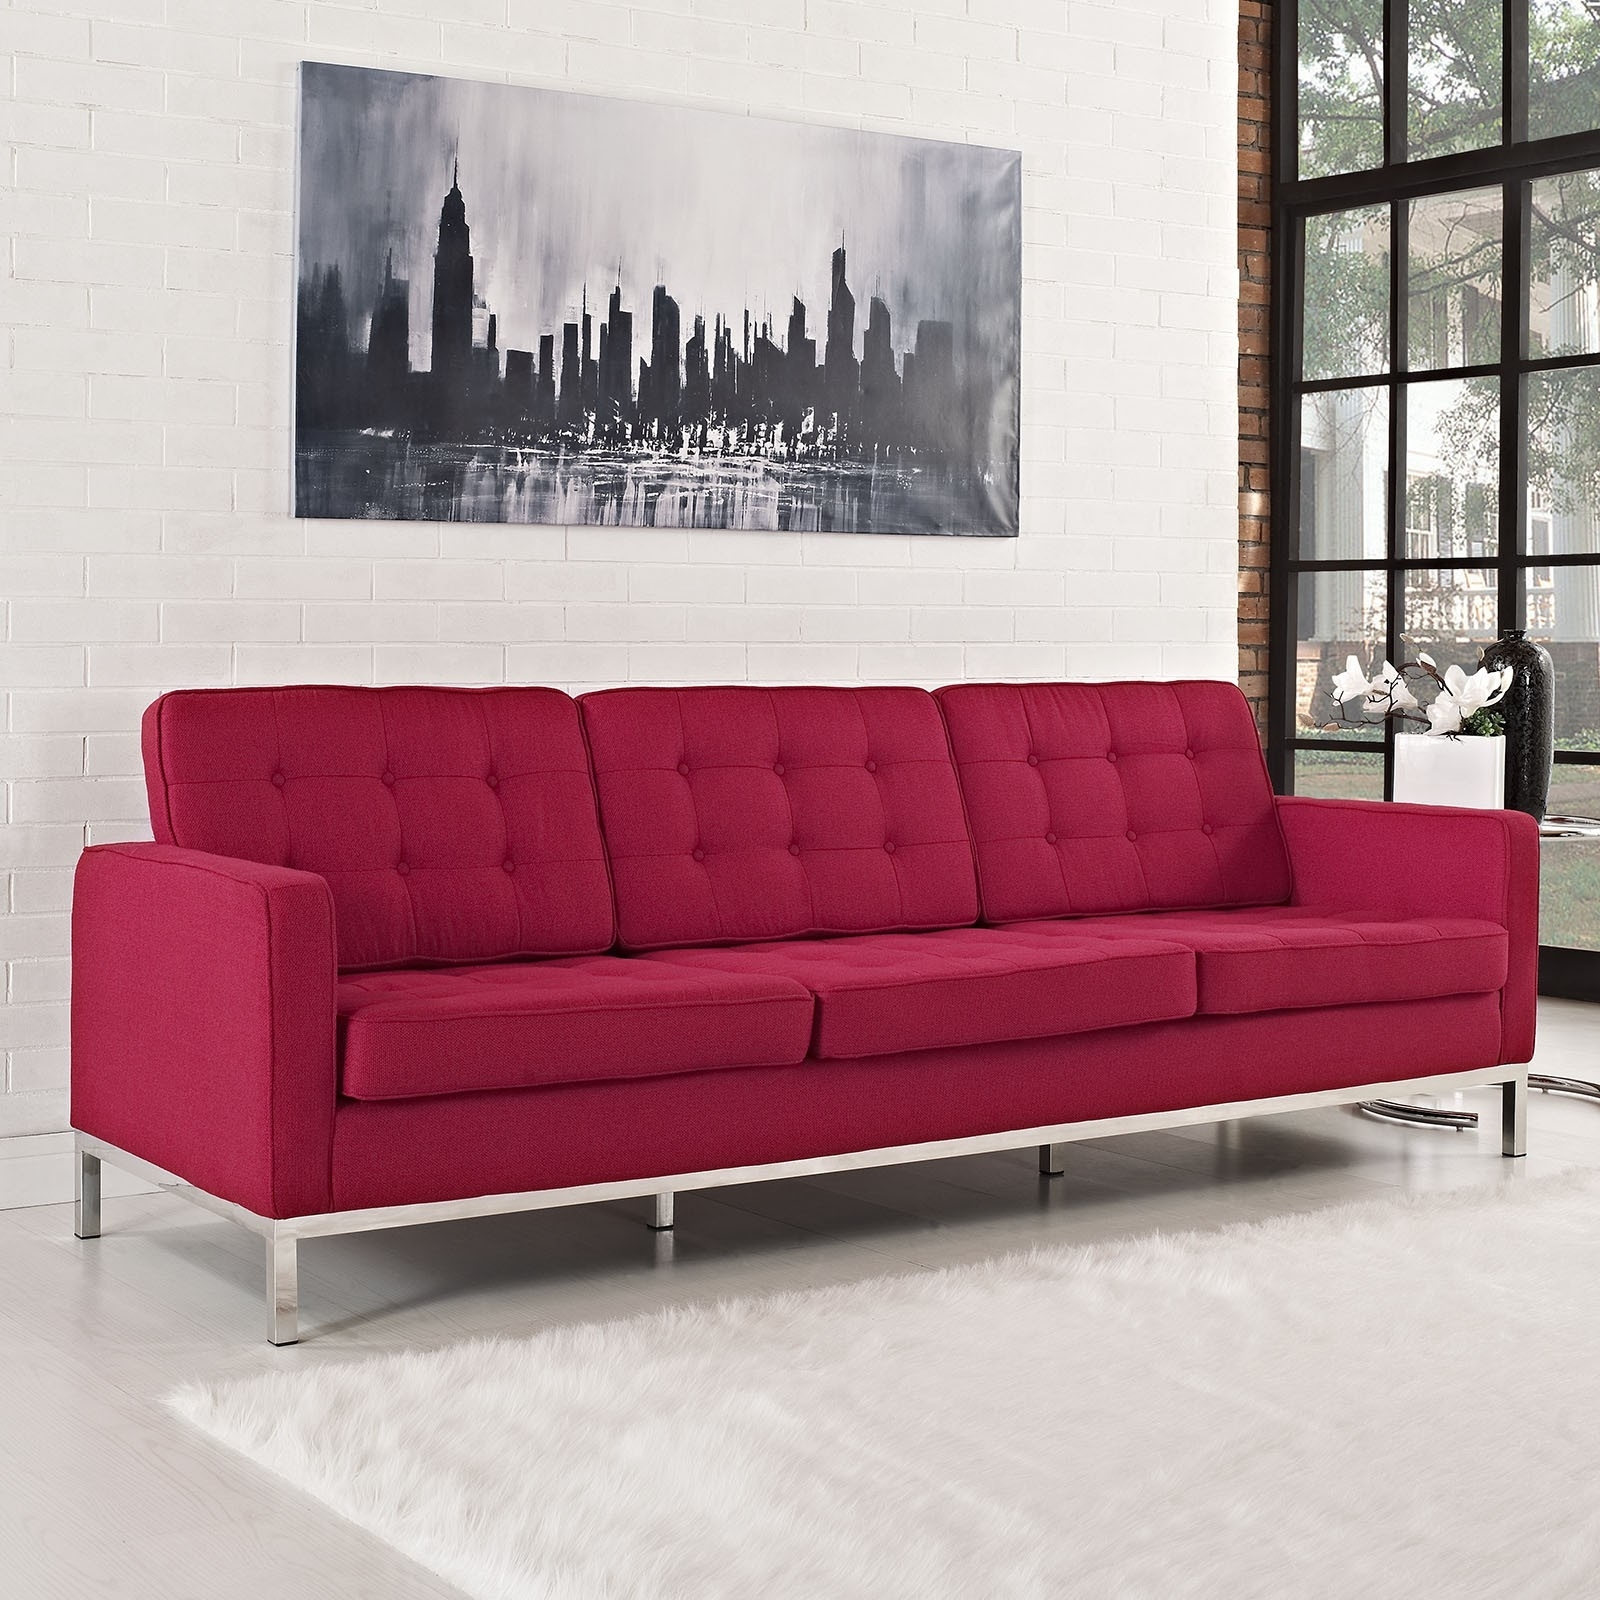 Preferred Sofa : View Florence Knoll Style Sofa Interior Design For Home Inside Florence Knoll Style Sofas (View 5 of 20)